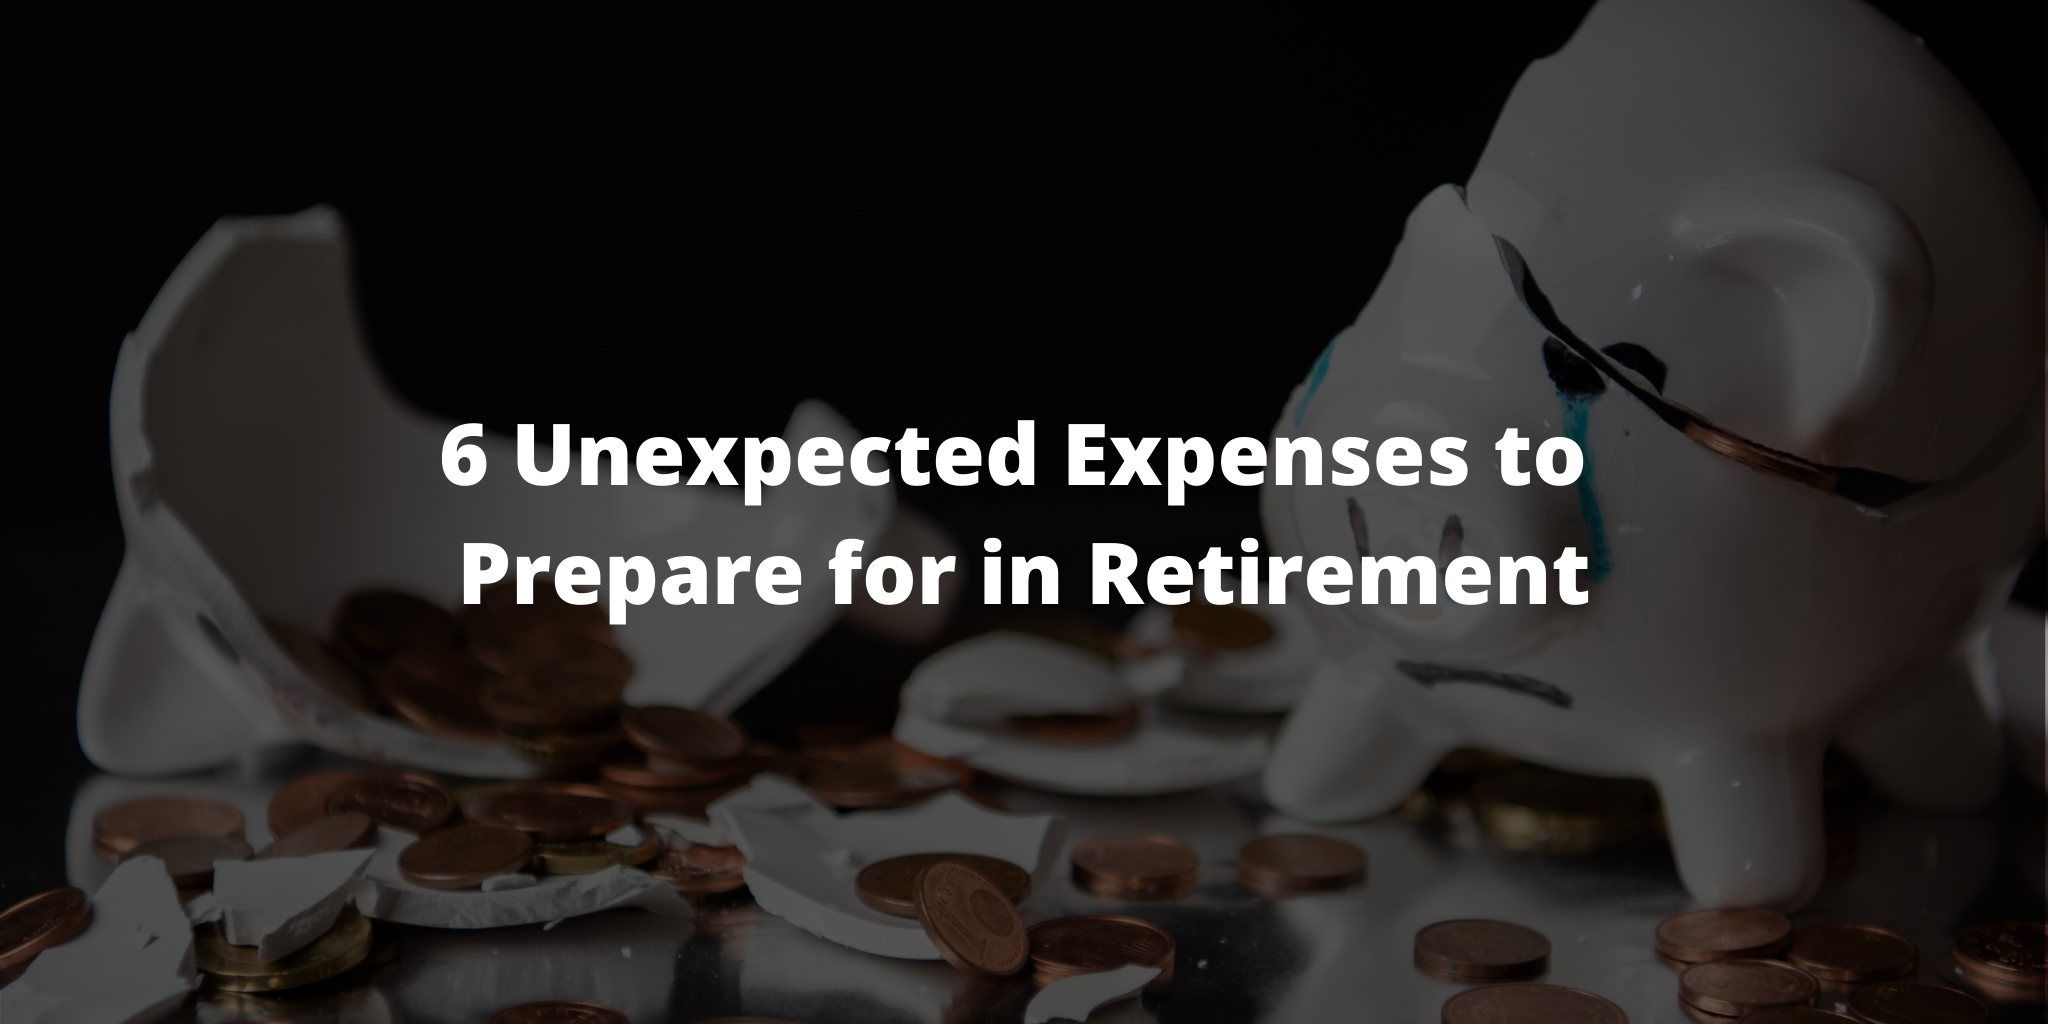 6 Unexpected Expenses to Prepare for in Retirement